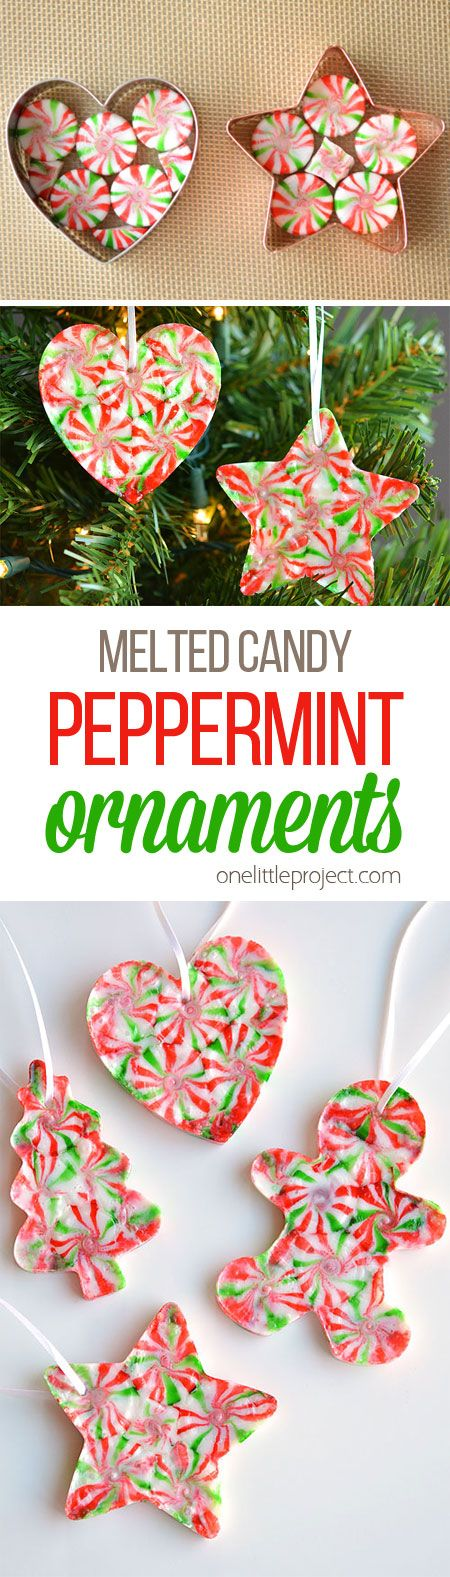 Melted Peppermint Candy Ornaments Recipe Holidays Pinterest